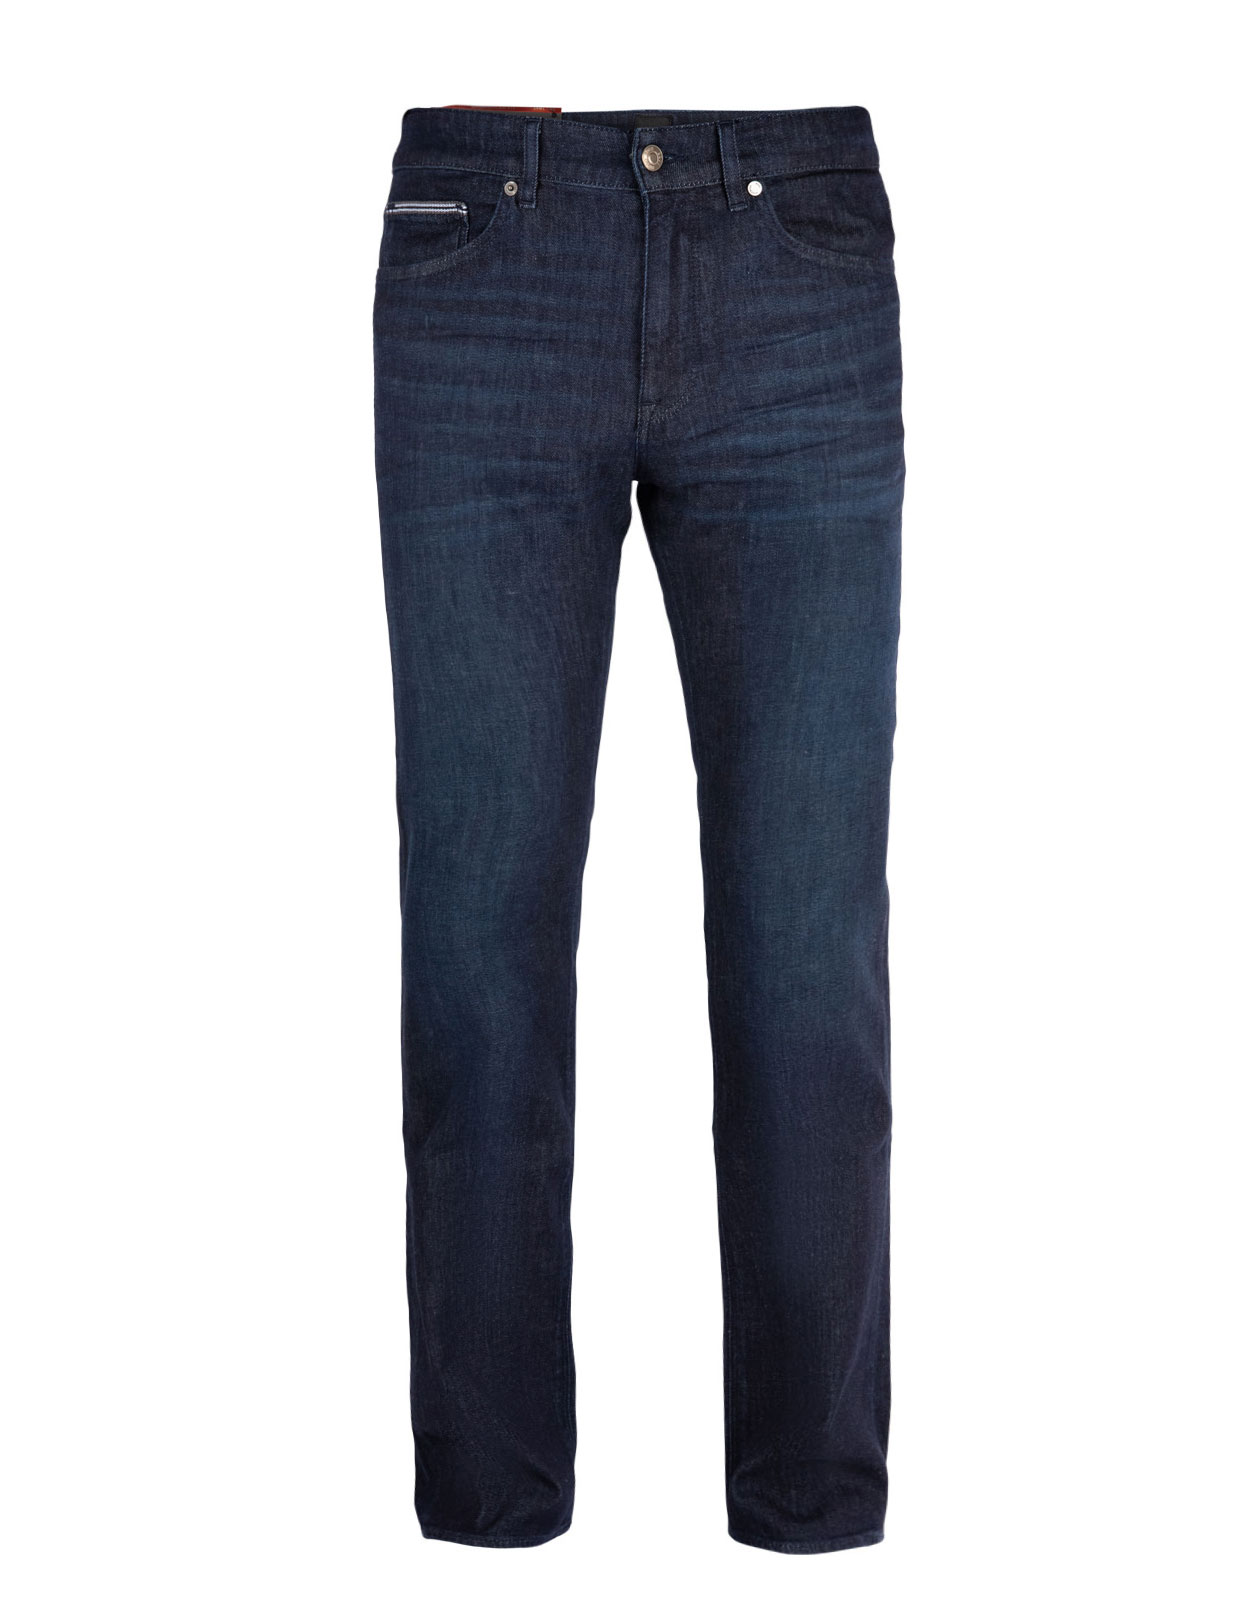 Maine Regular Fit Jeans Lightweight Stretch Denim Dark Blue